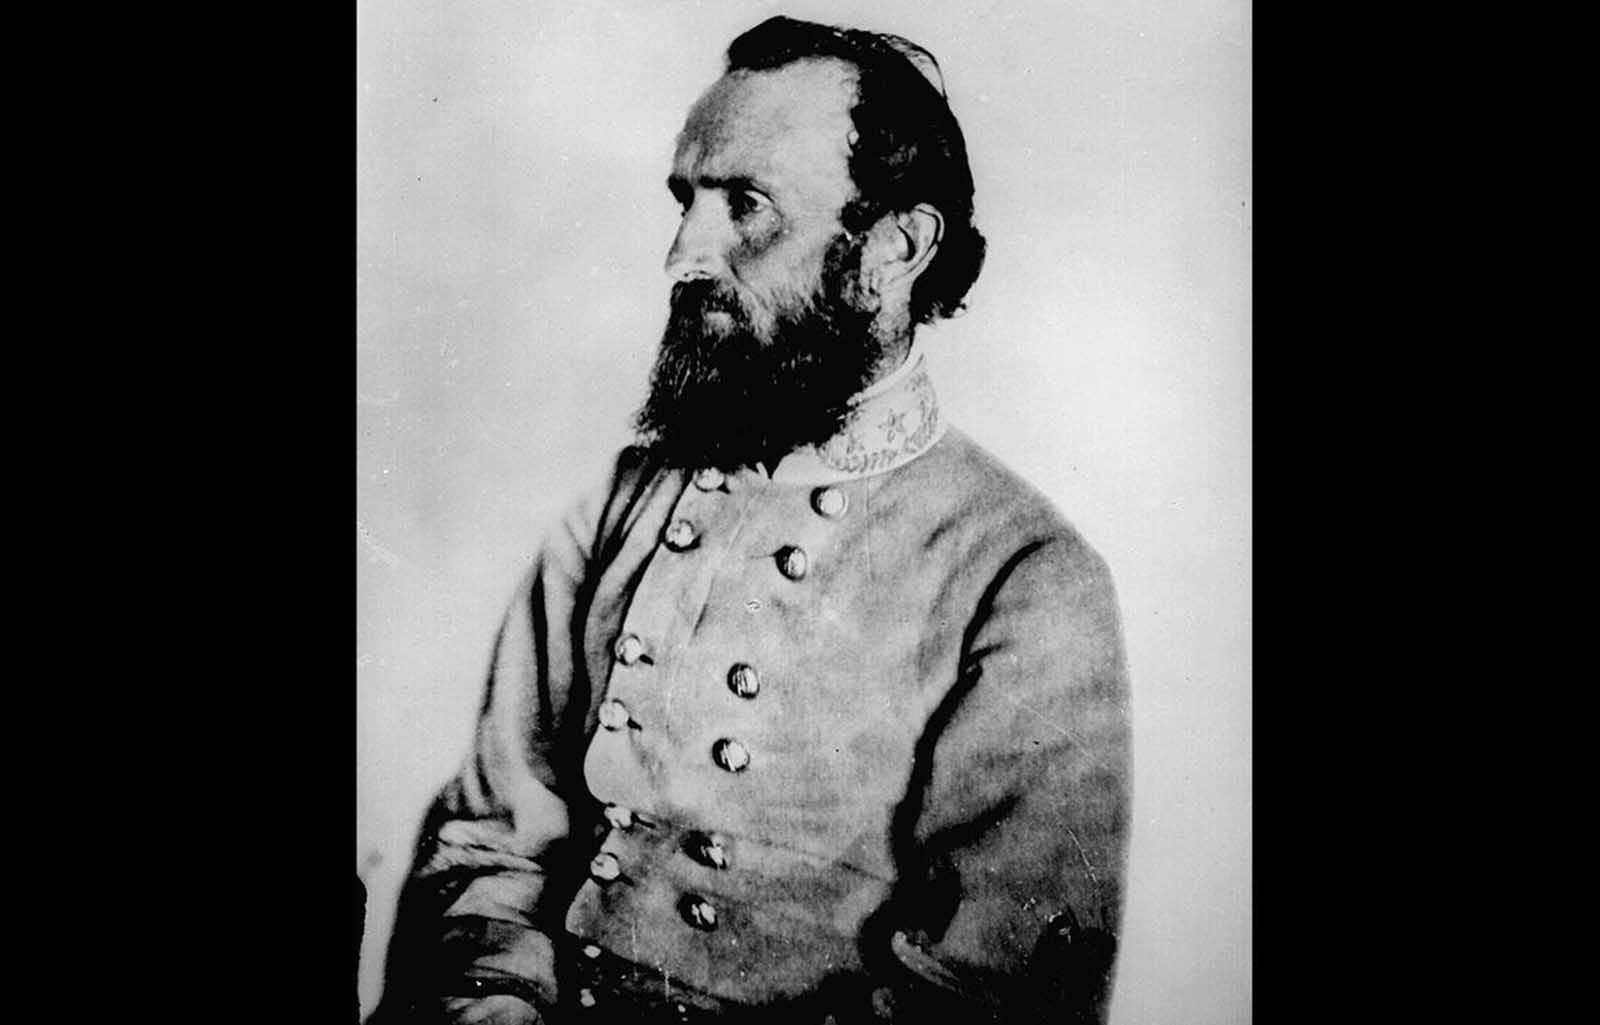 Confederate general Stonewall Jackson. Considered a shrewd tactician, Jackson served in several campaigns, but during the Battle of Chancellorsville he was accidentally shot by his own troops, losing an arm to amputation. He died of complications of pneumonia eight days later, quickly becoming celebrated as a hero in the South.